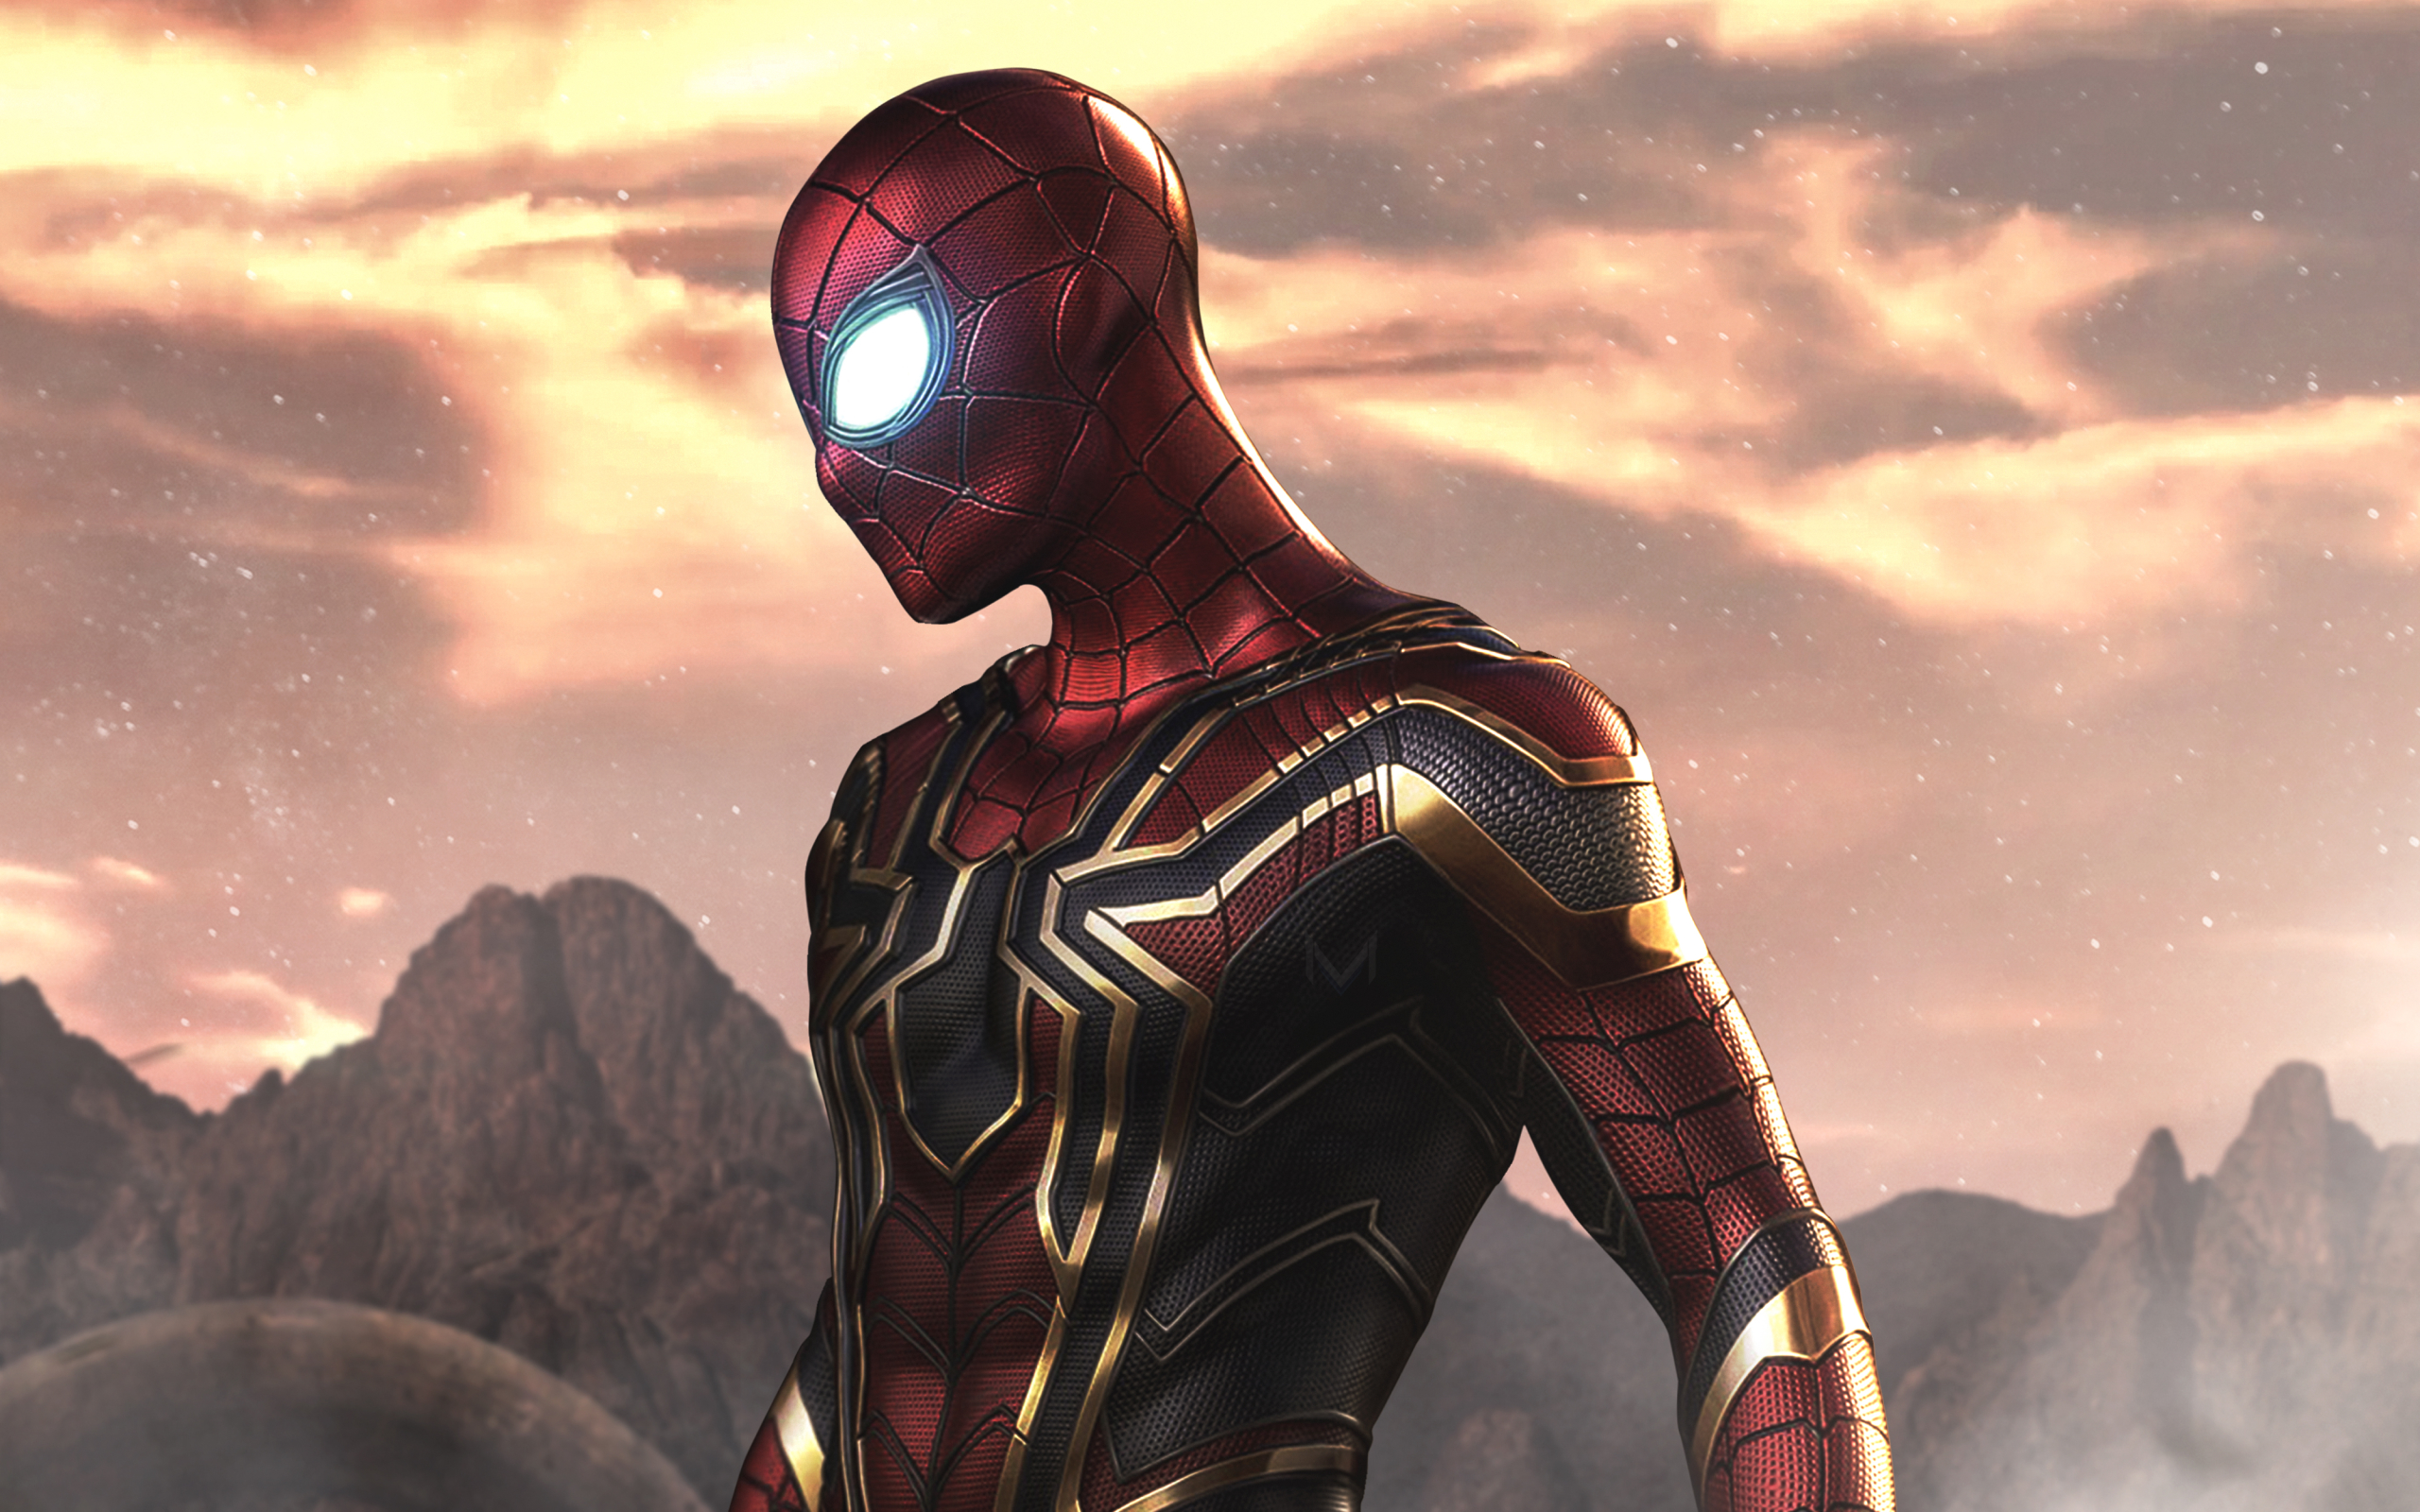 HD Wallpaper Avengers Infinity War Iron Spider Marvel Comics